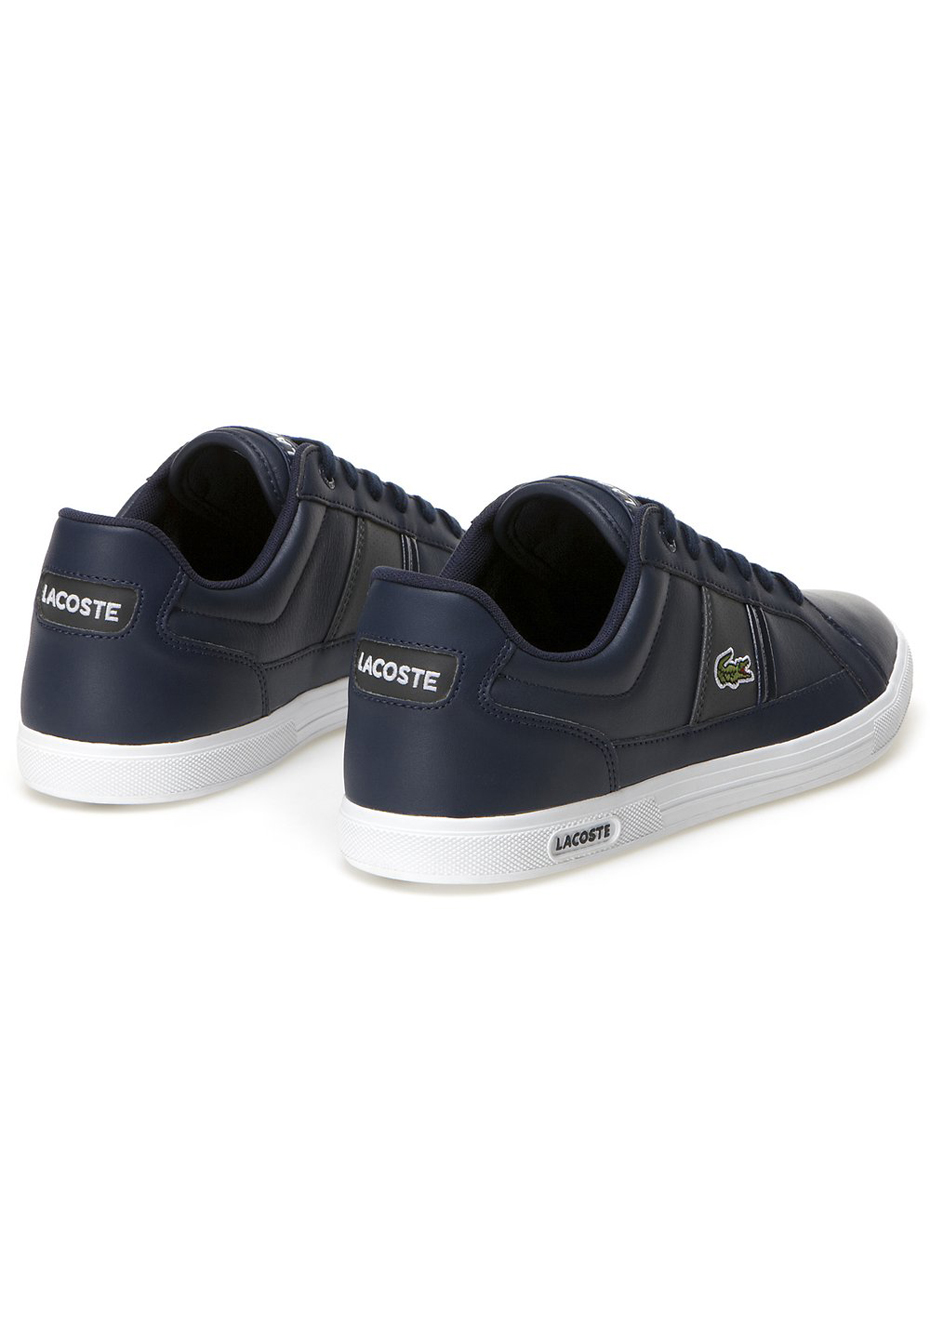 Mens Lacoste - Europa Lcr3 Spm - Navy/Dark Grey - Mens Brand Outlet - Onceit